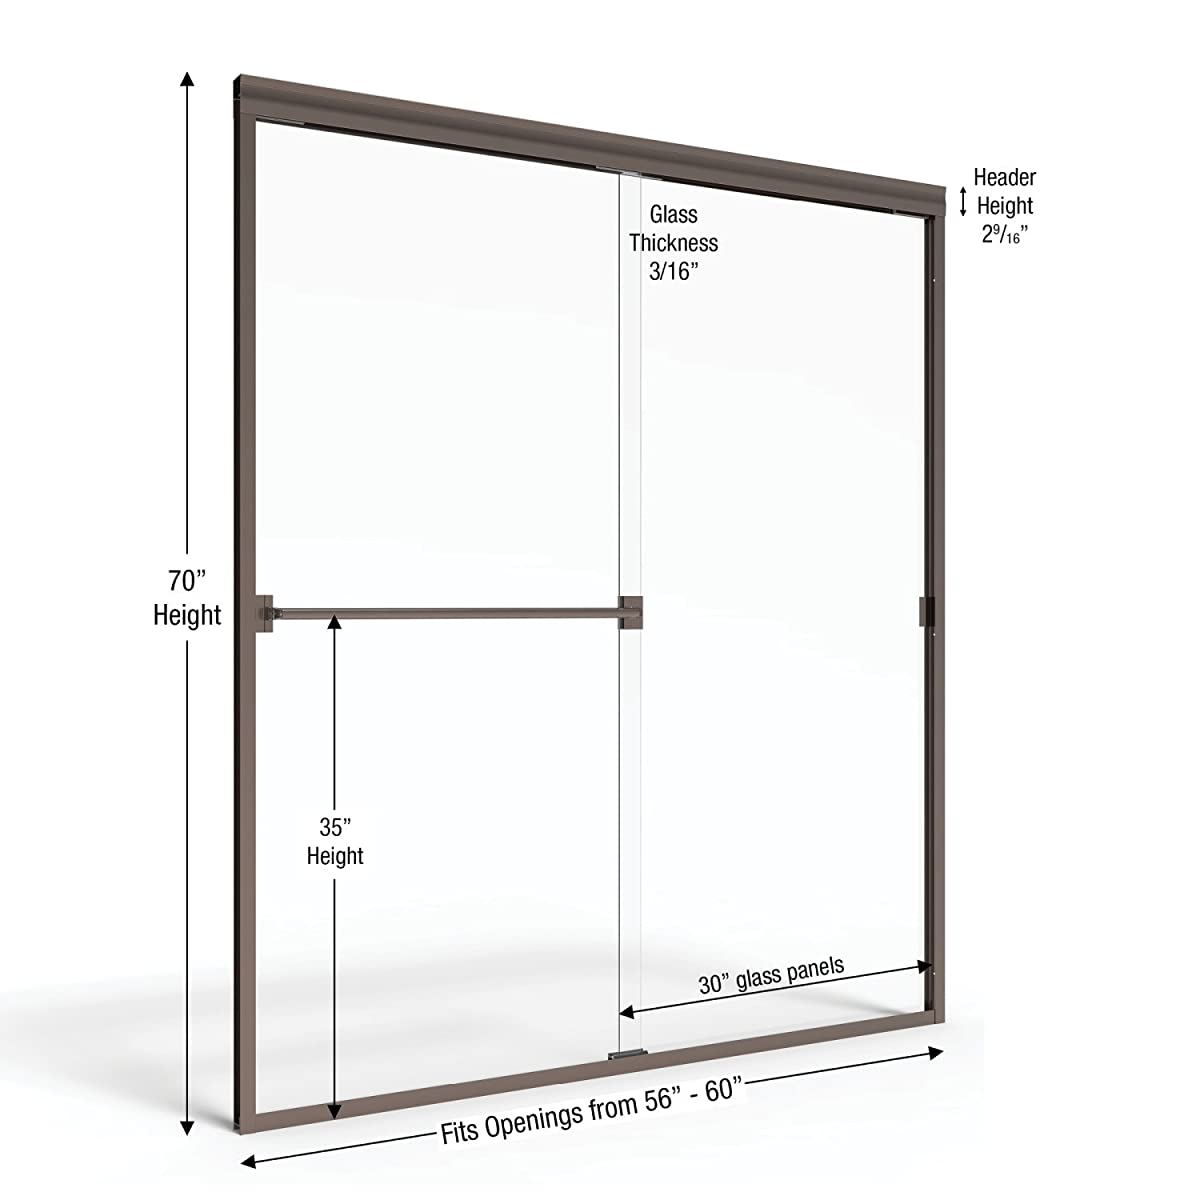 Basco Classic Sliding Shower Door, Fits 56-60 inch opening, Clear Glass, Oil Rubbed Bronze Finish